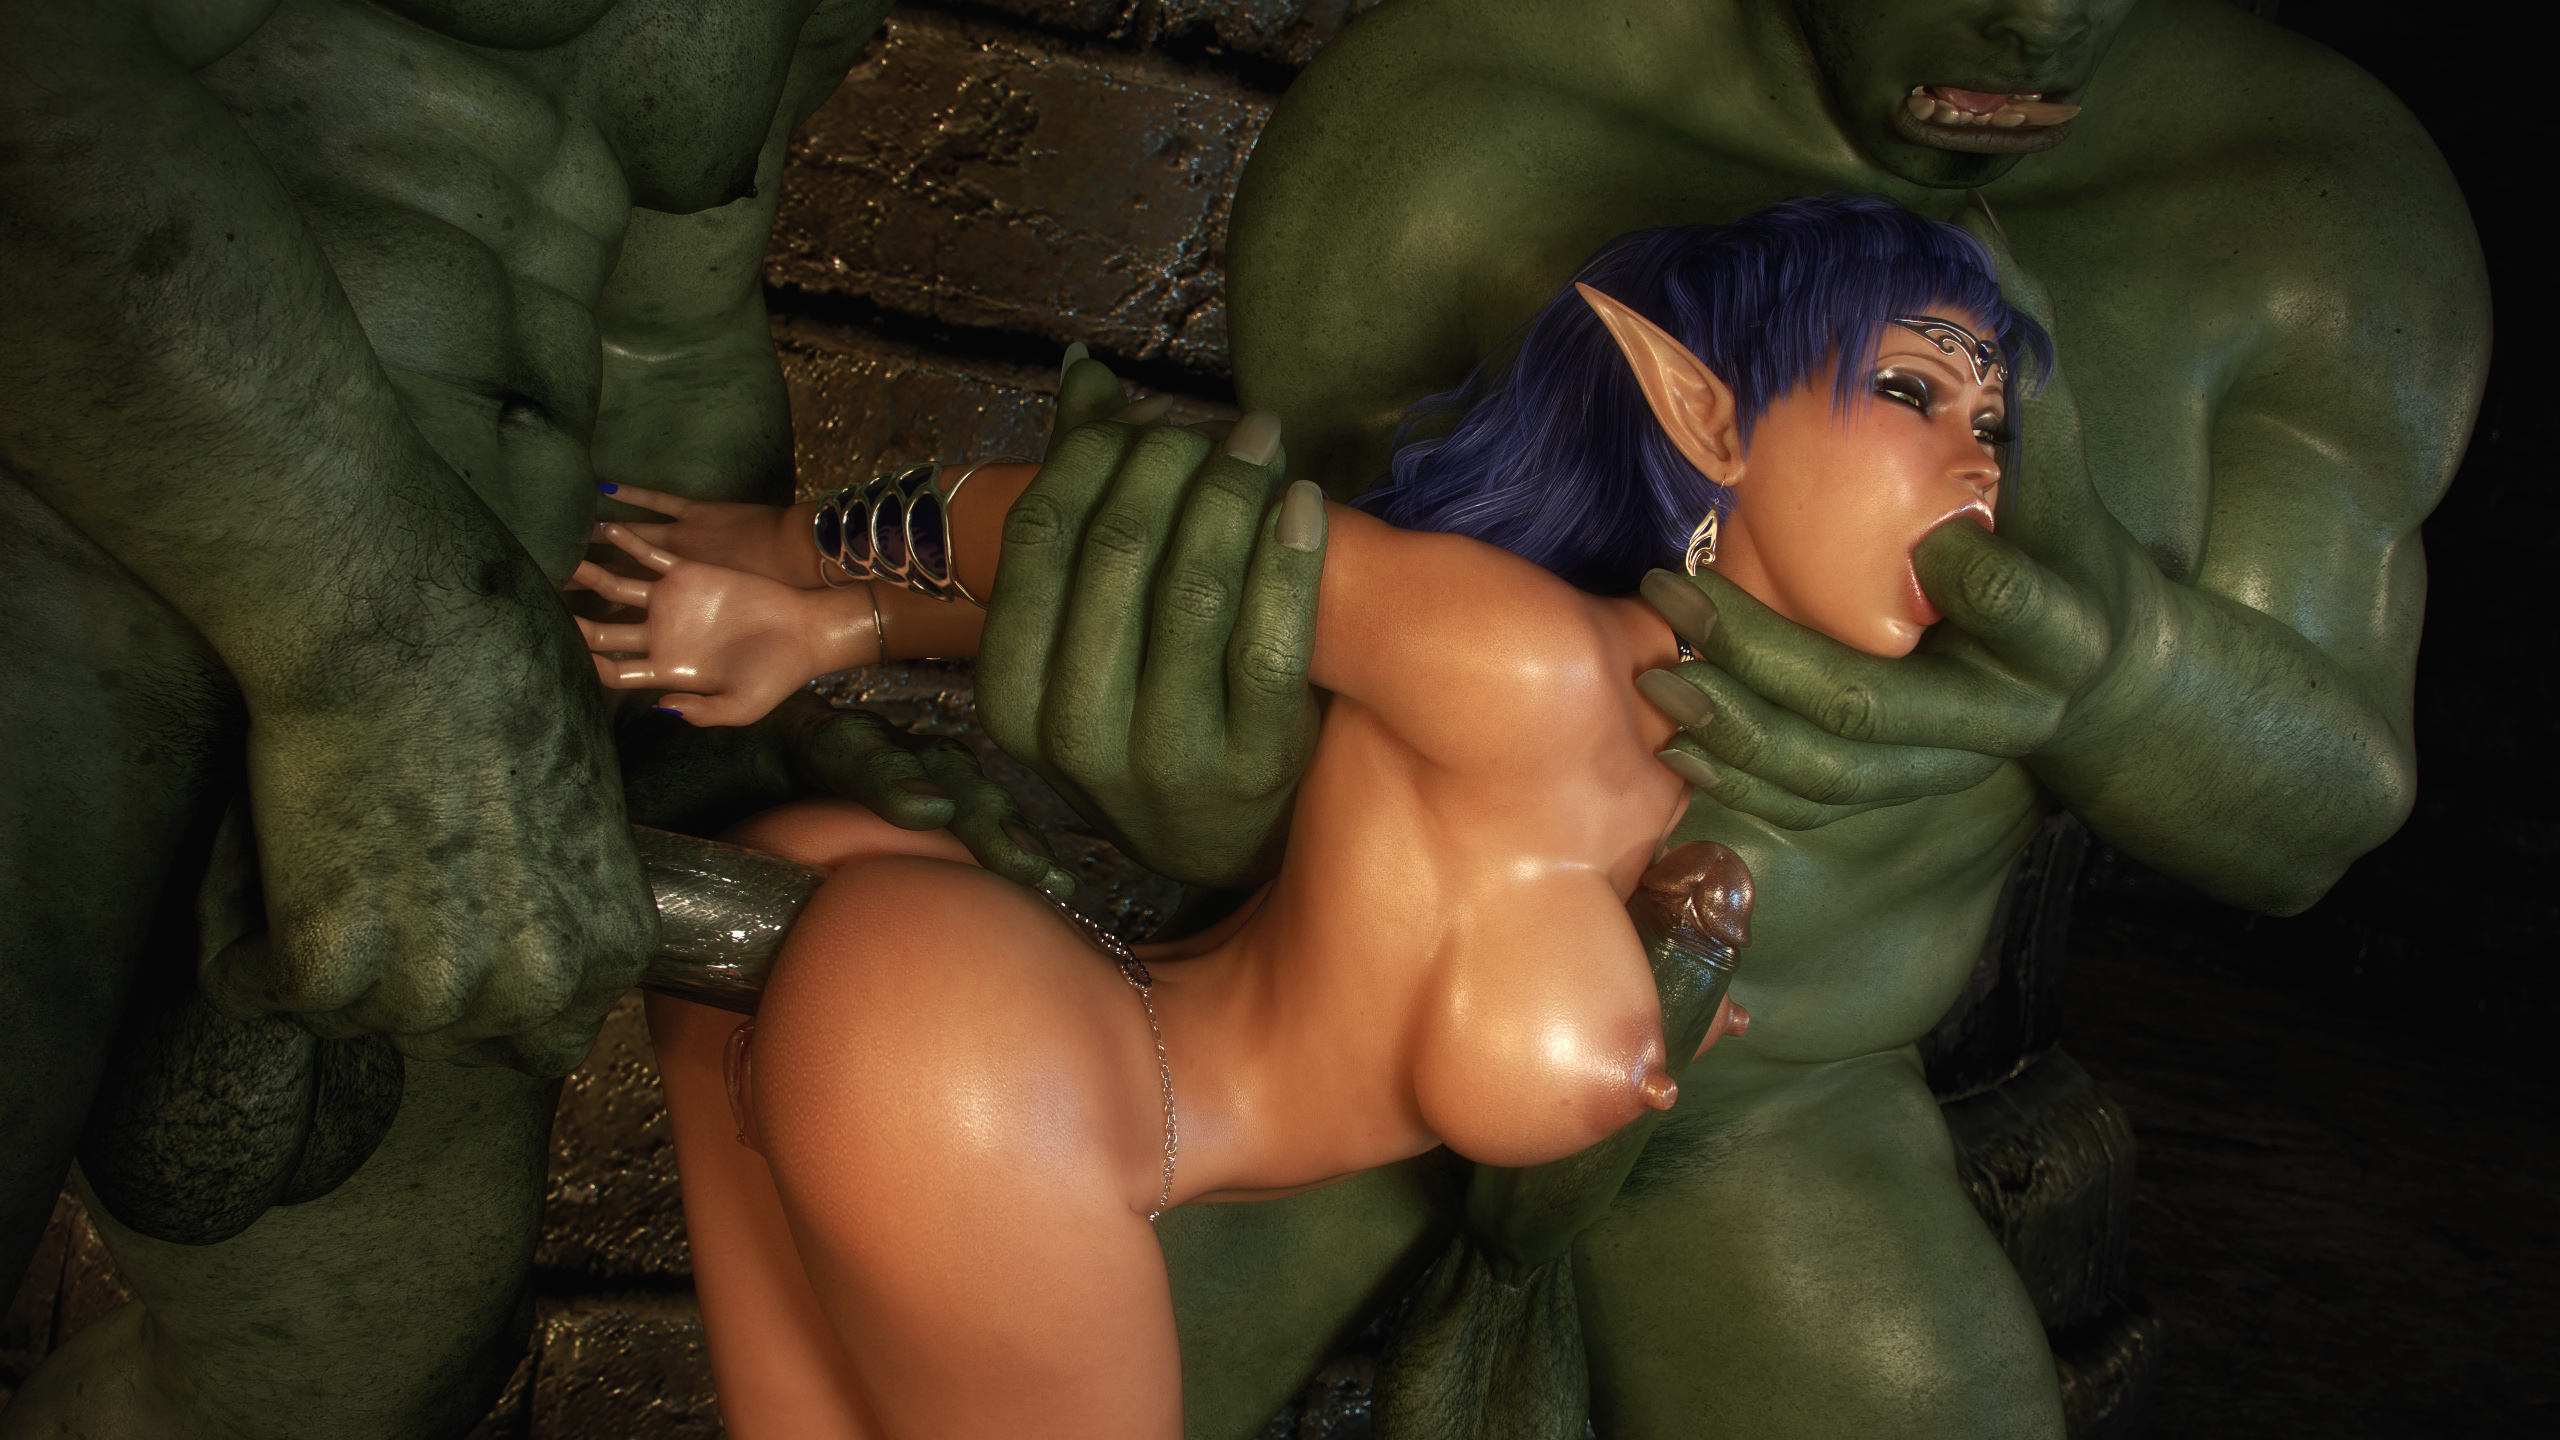 3d dungeon porn pics anime movie